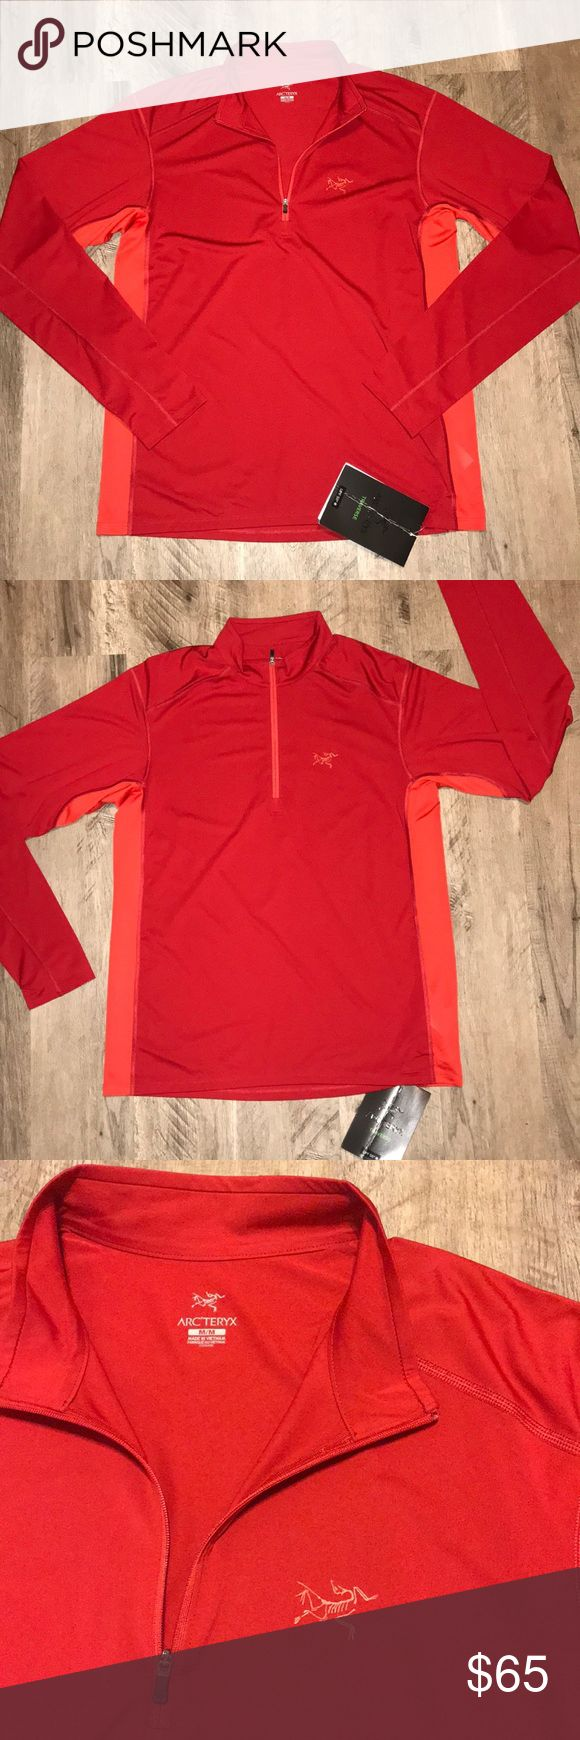 Arc'teryx l/s (Retail $85) Arc'teryx l/s☄️Diablo red☄️ether zip neck☄️Quick drying,odor resistant, good moisture management, and high thermal efficiency☄️Comfort ease and simplicity for hiking and trekking☄️tag has s crease in it Arc'teryx Shirts Tees - Long Sleeve